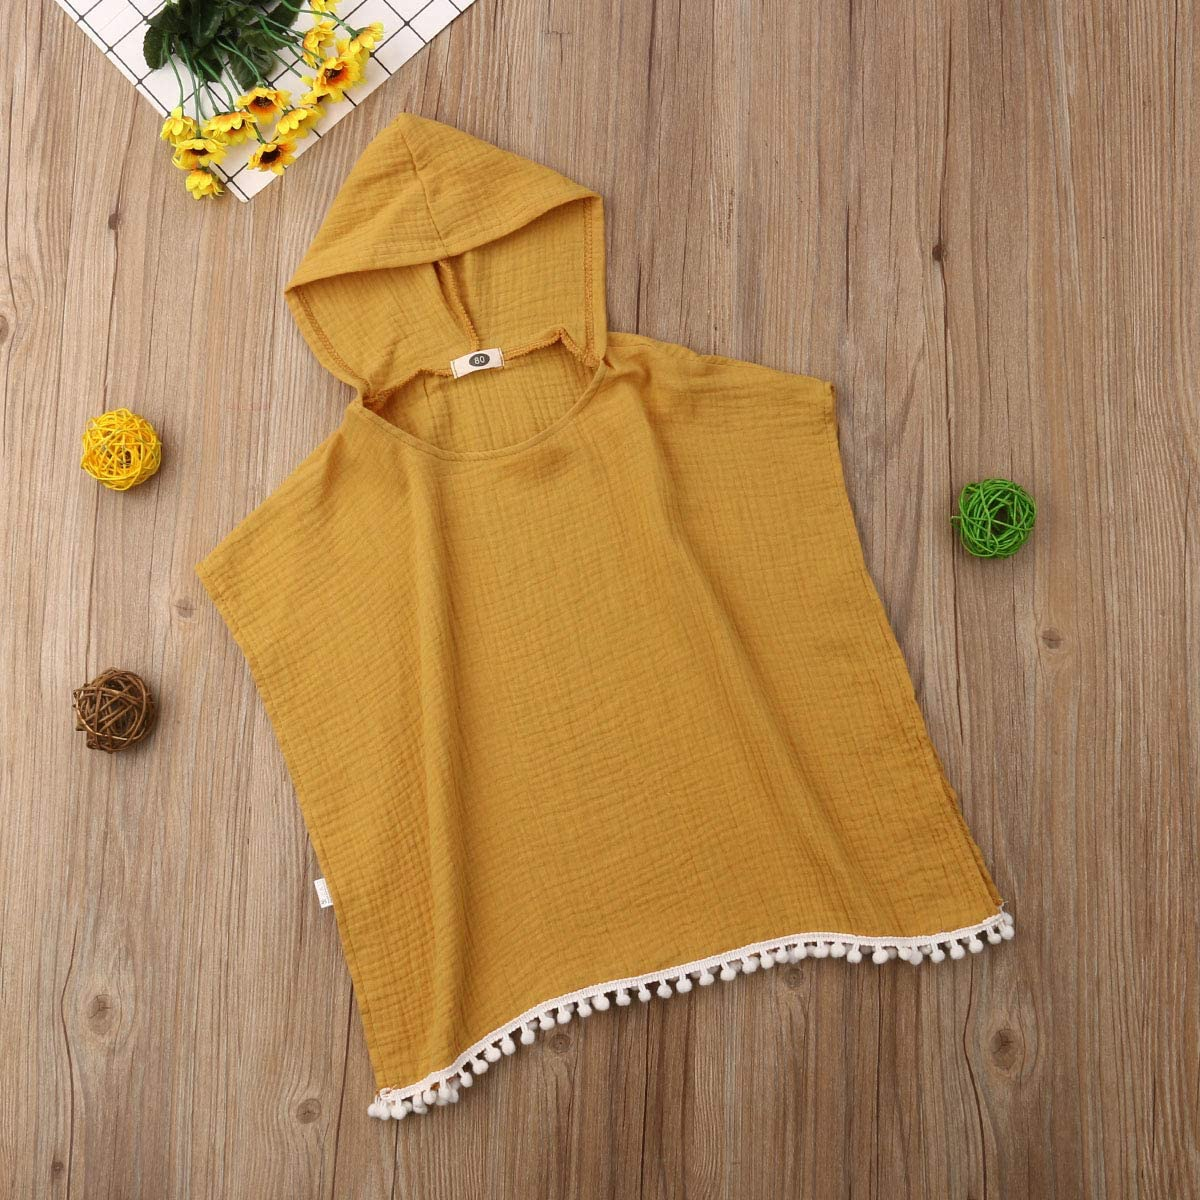 Kids Toddler Baby Girls Boys Beach Cover Up Solid Color Hooded Sleeveless Tassel Long Cape Dress Bath Clothes